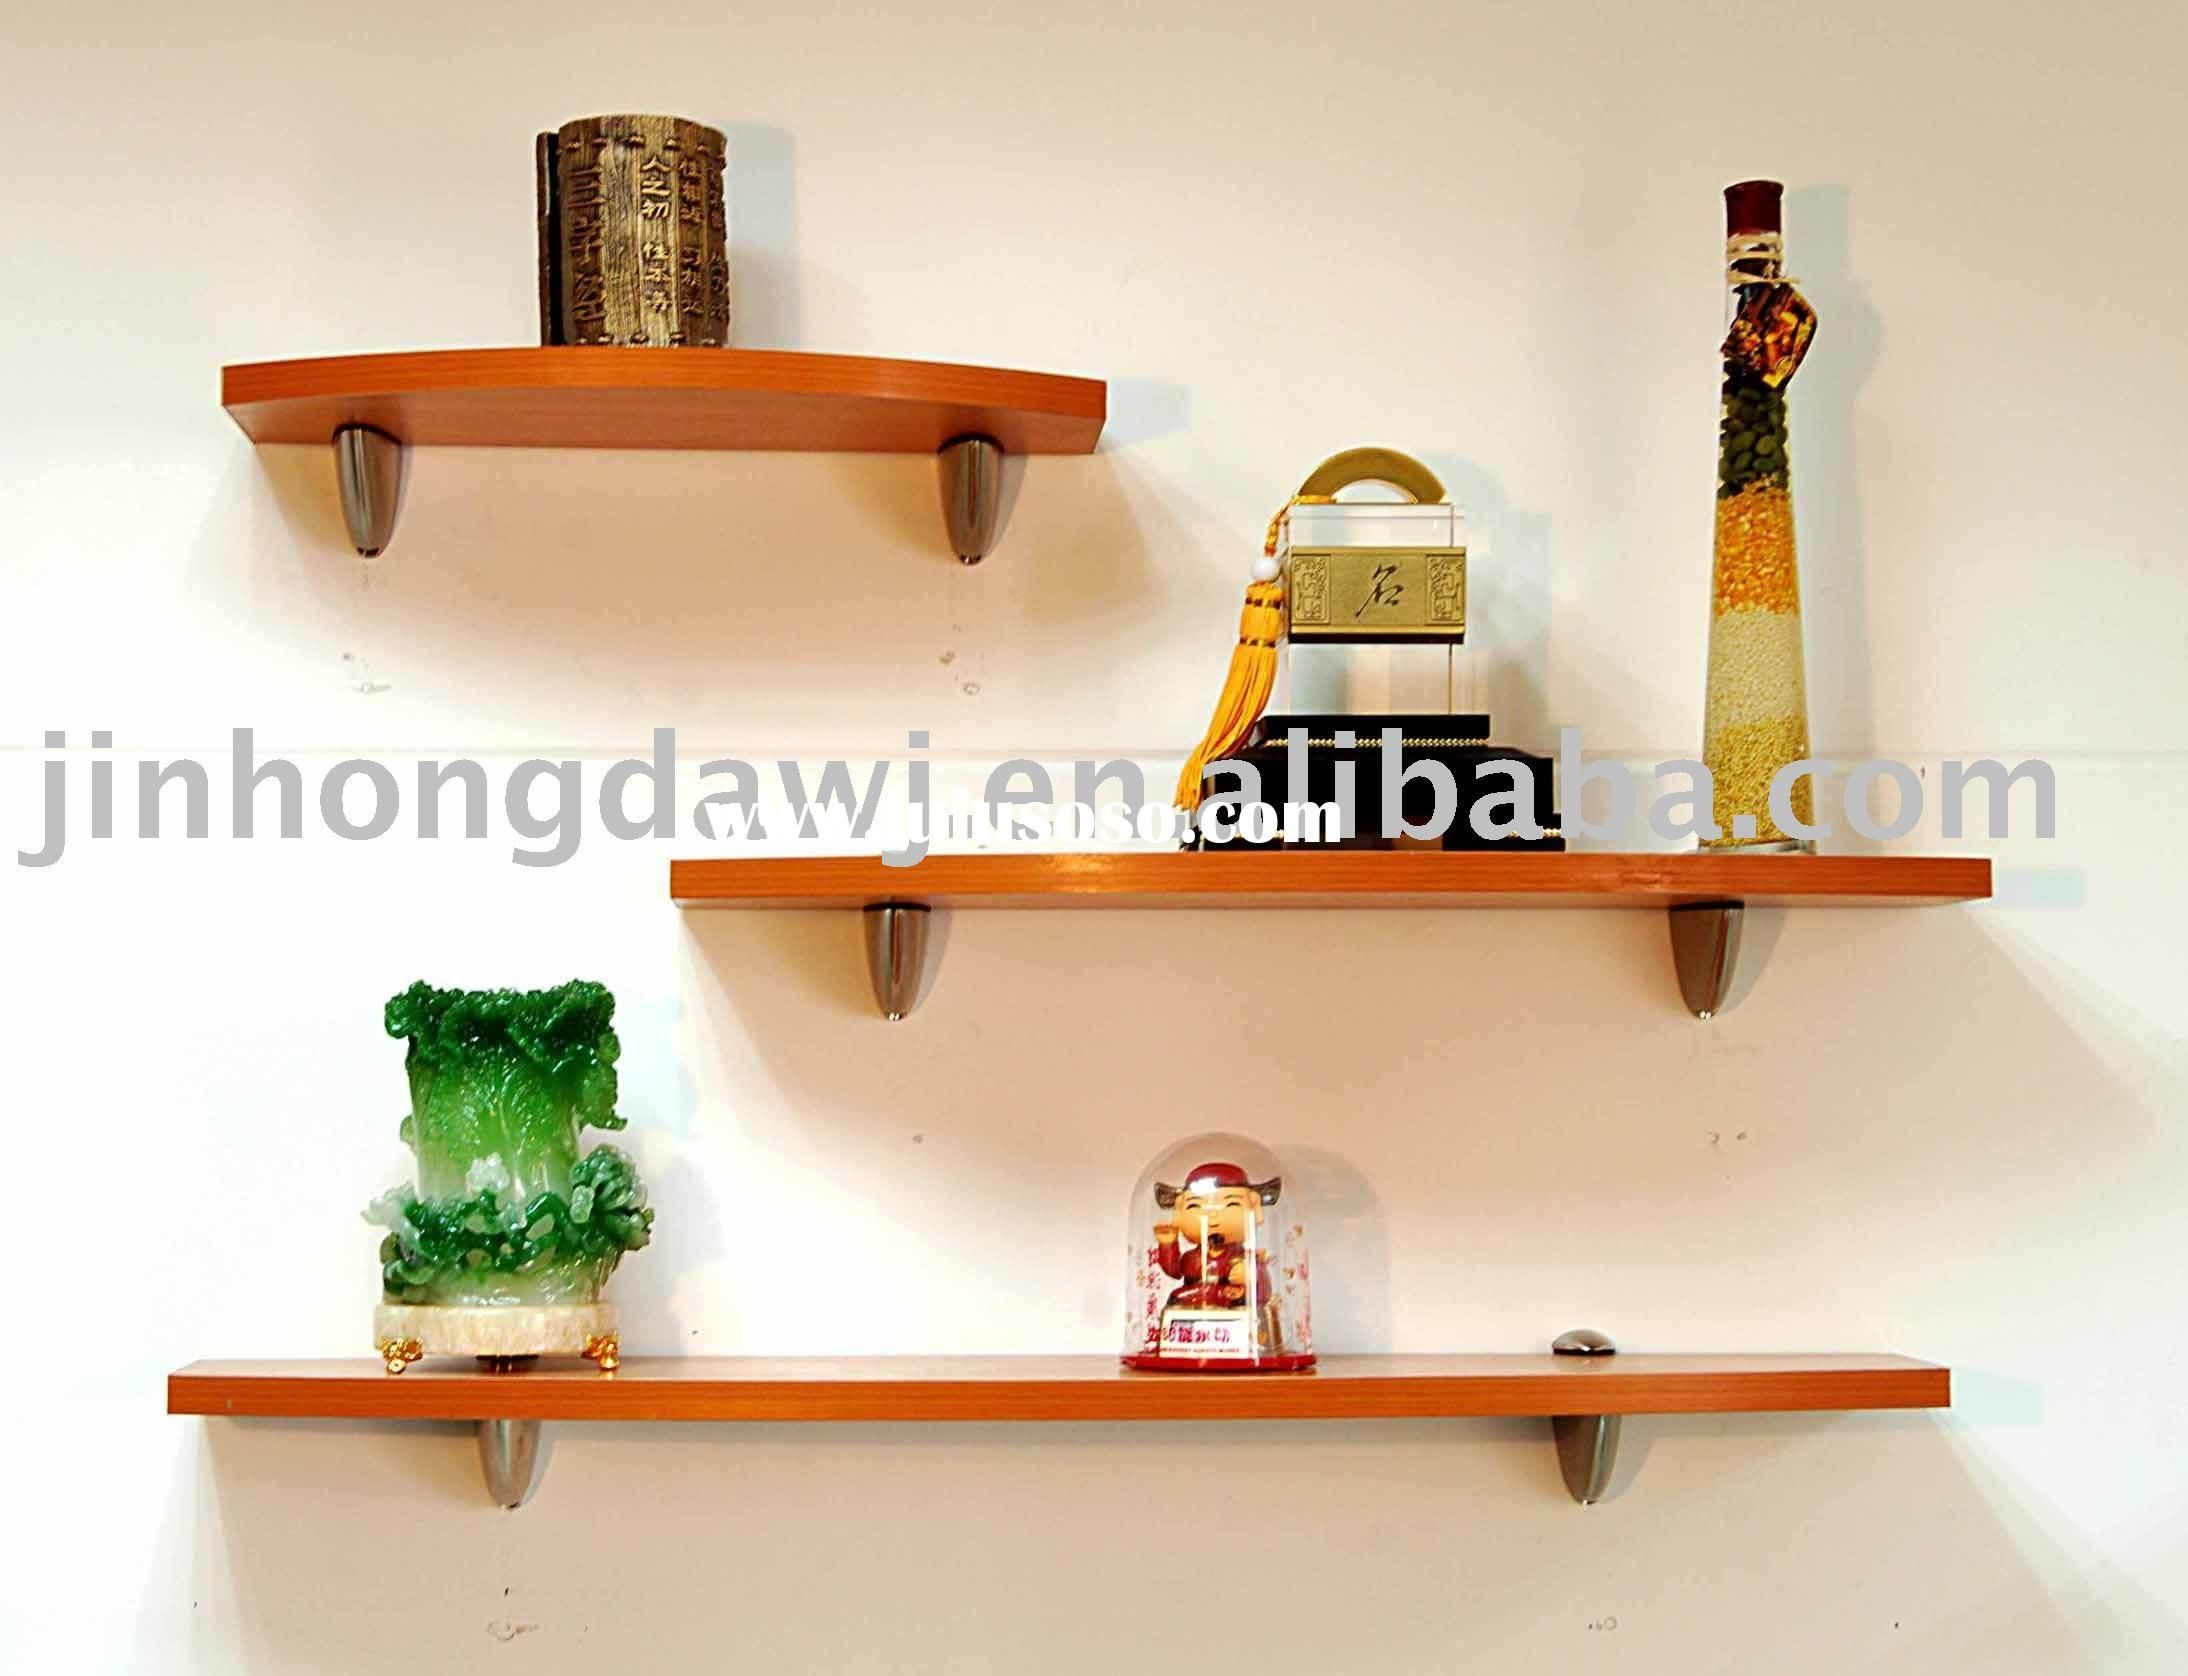 46 Creative DIY Wall Shelves Ideas - Guru Koala | shelves ...